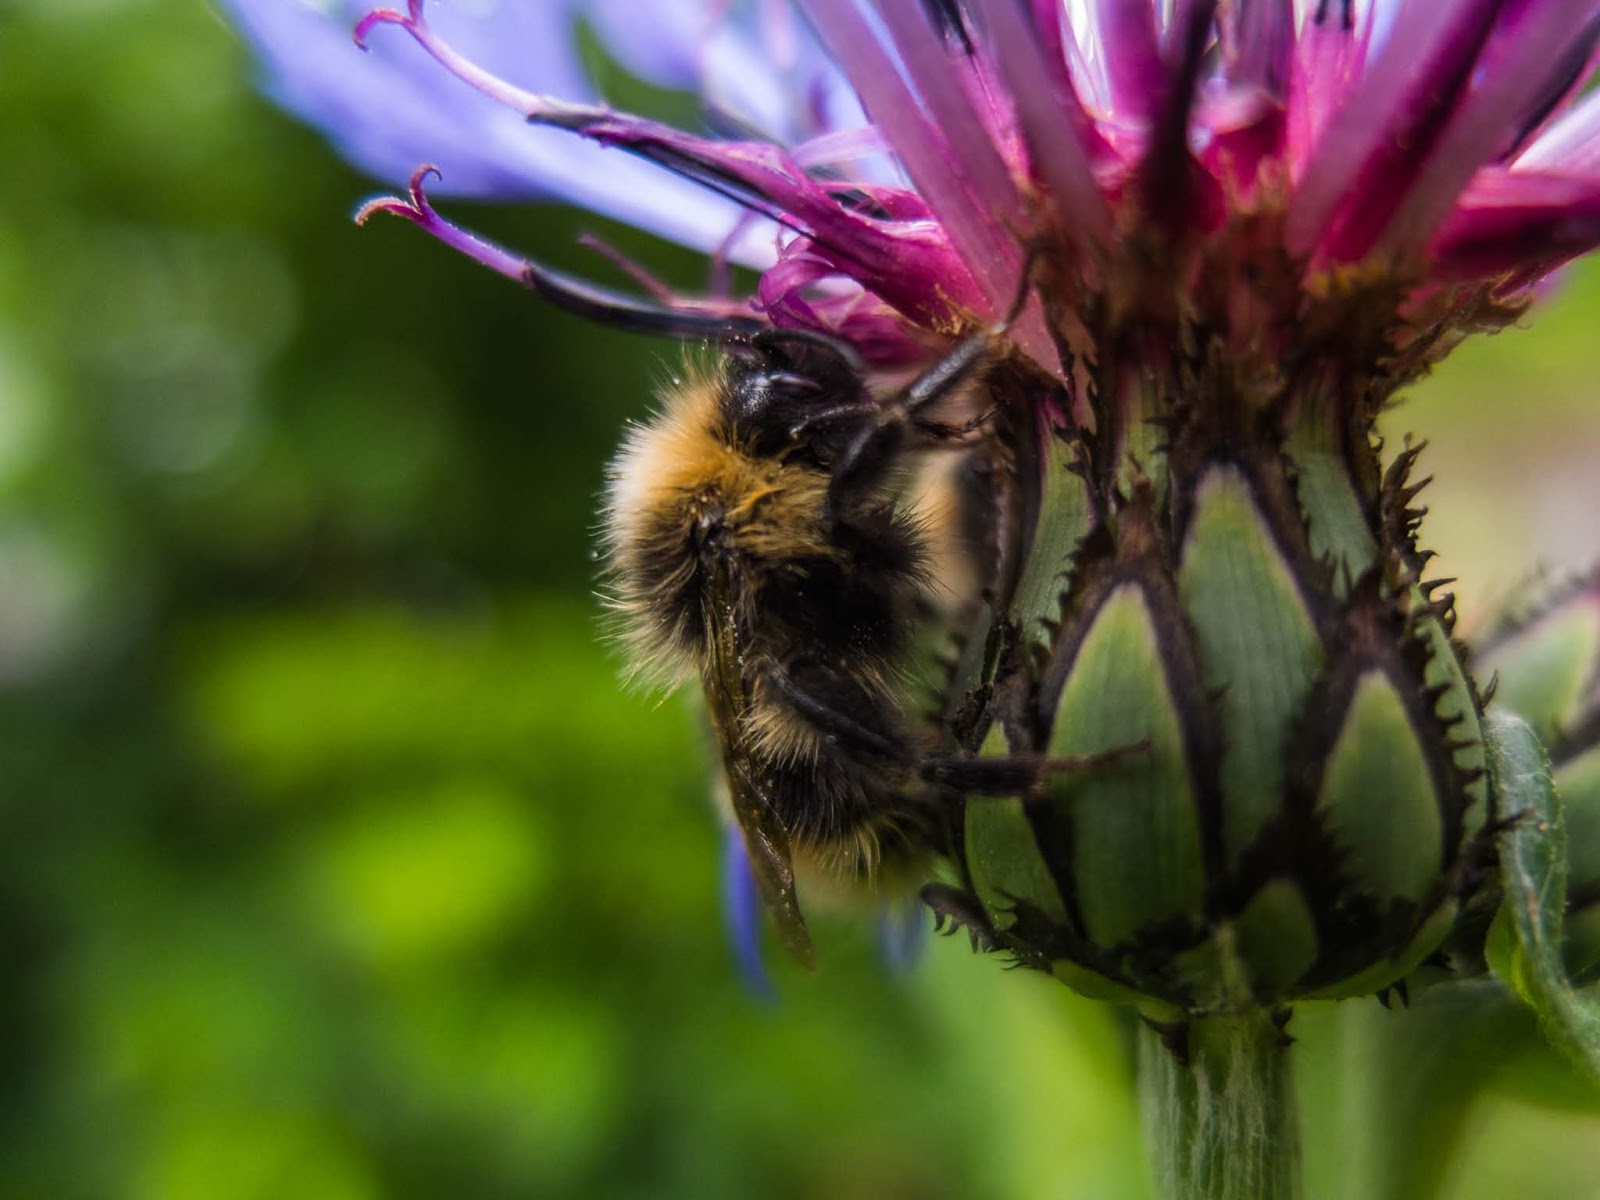 A bumble bee seeking shelter from the rain on a Cornflower.